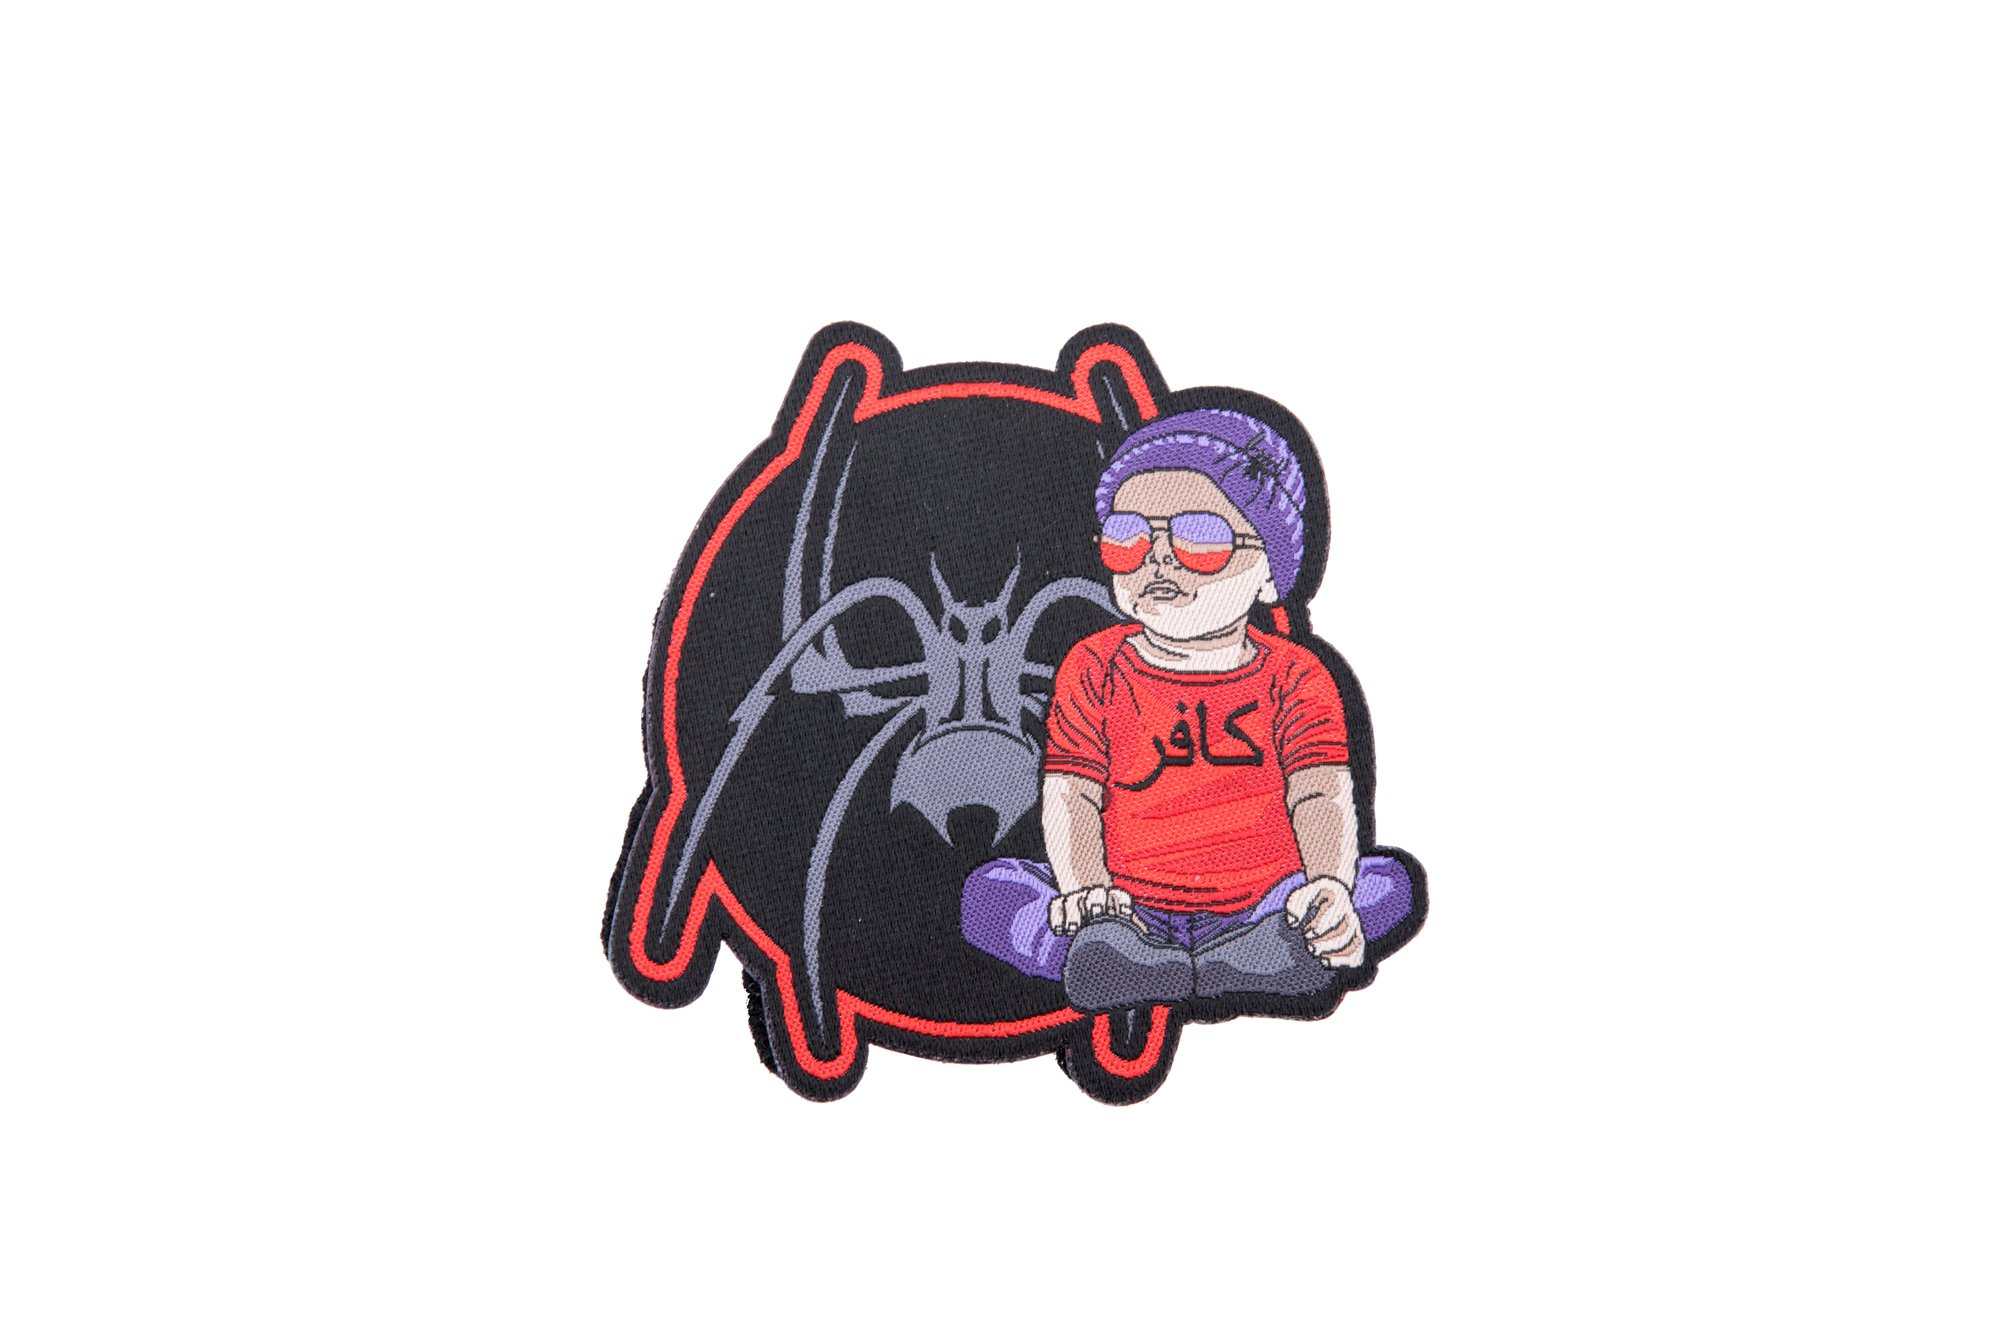 Limited Baby Carlos Patch